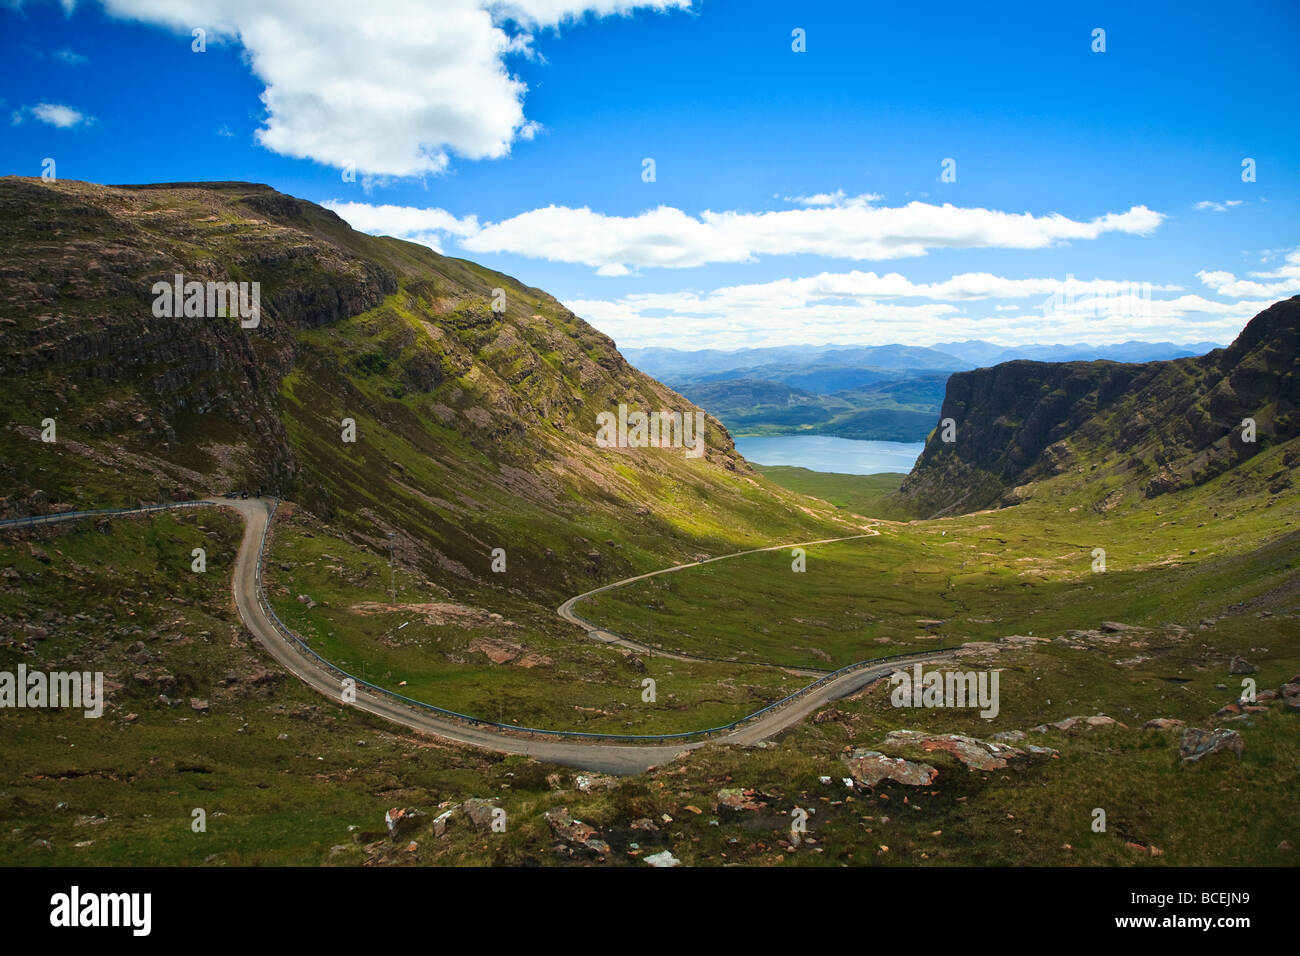 Apple Id Reset Email >> Pass of the cattle near Applecross, Wester Ross, Scotland, West coast Stock Photo: 24908277 - Alamy